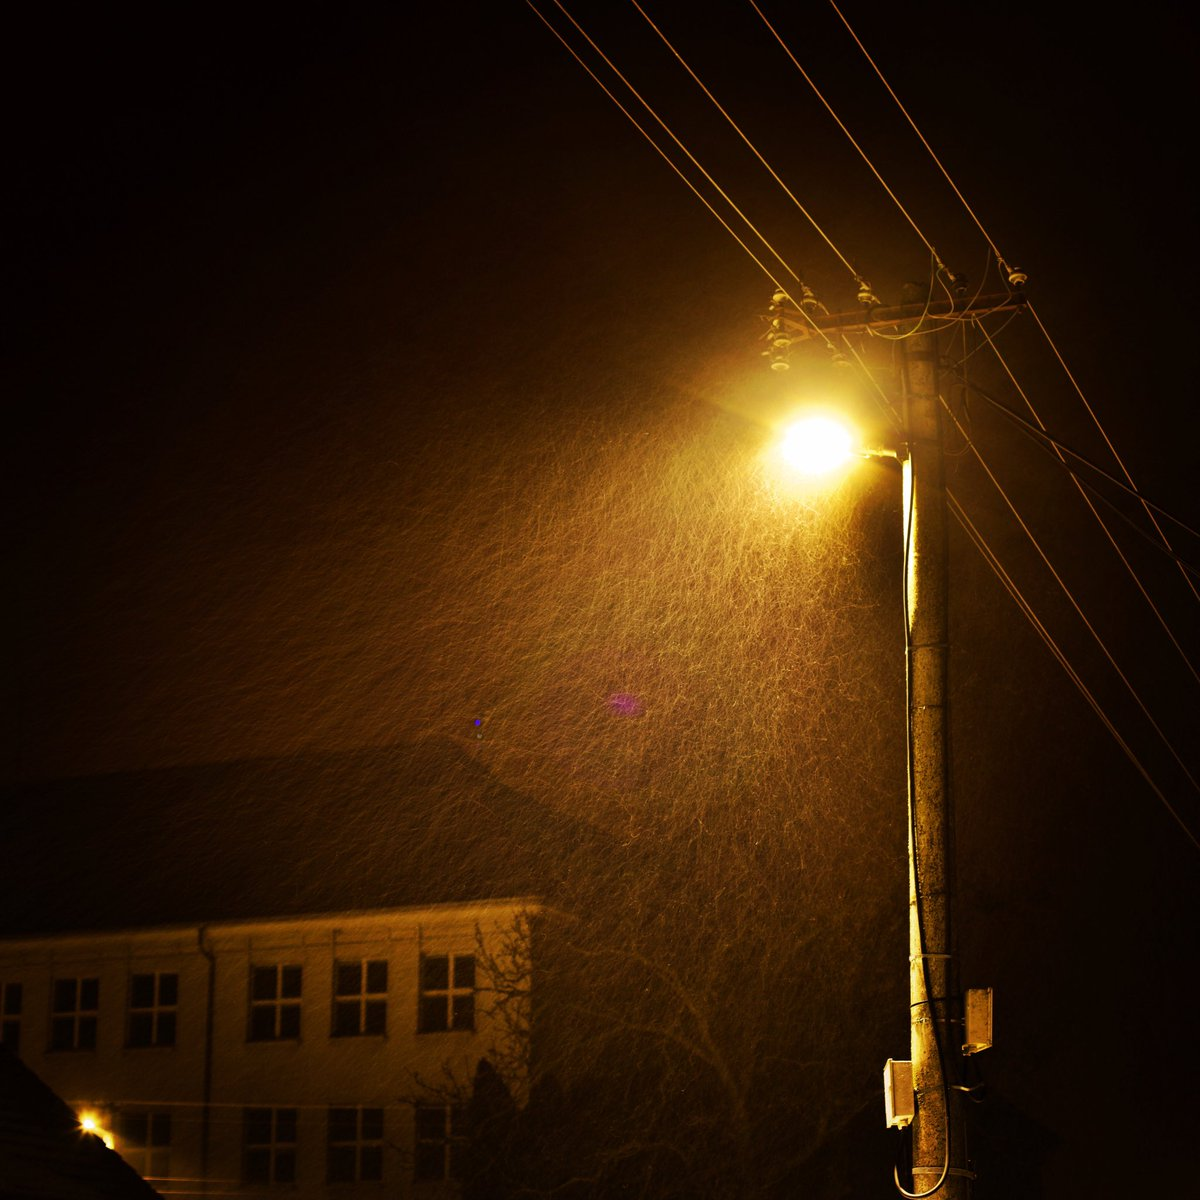 #snowing #winter #night #canonphotography